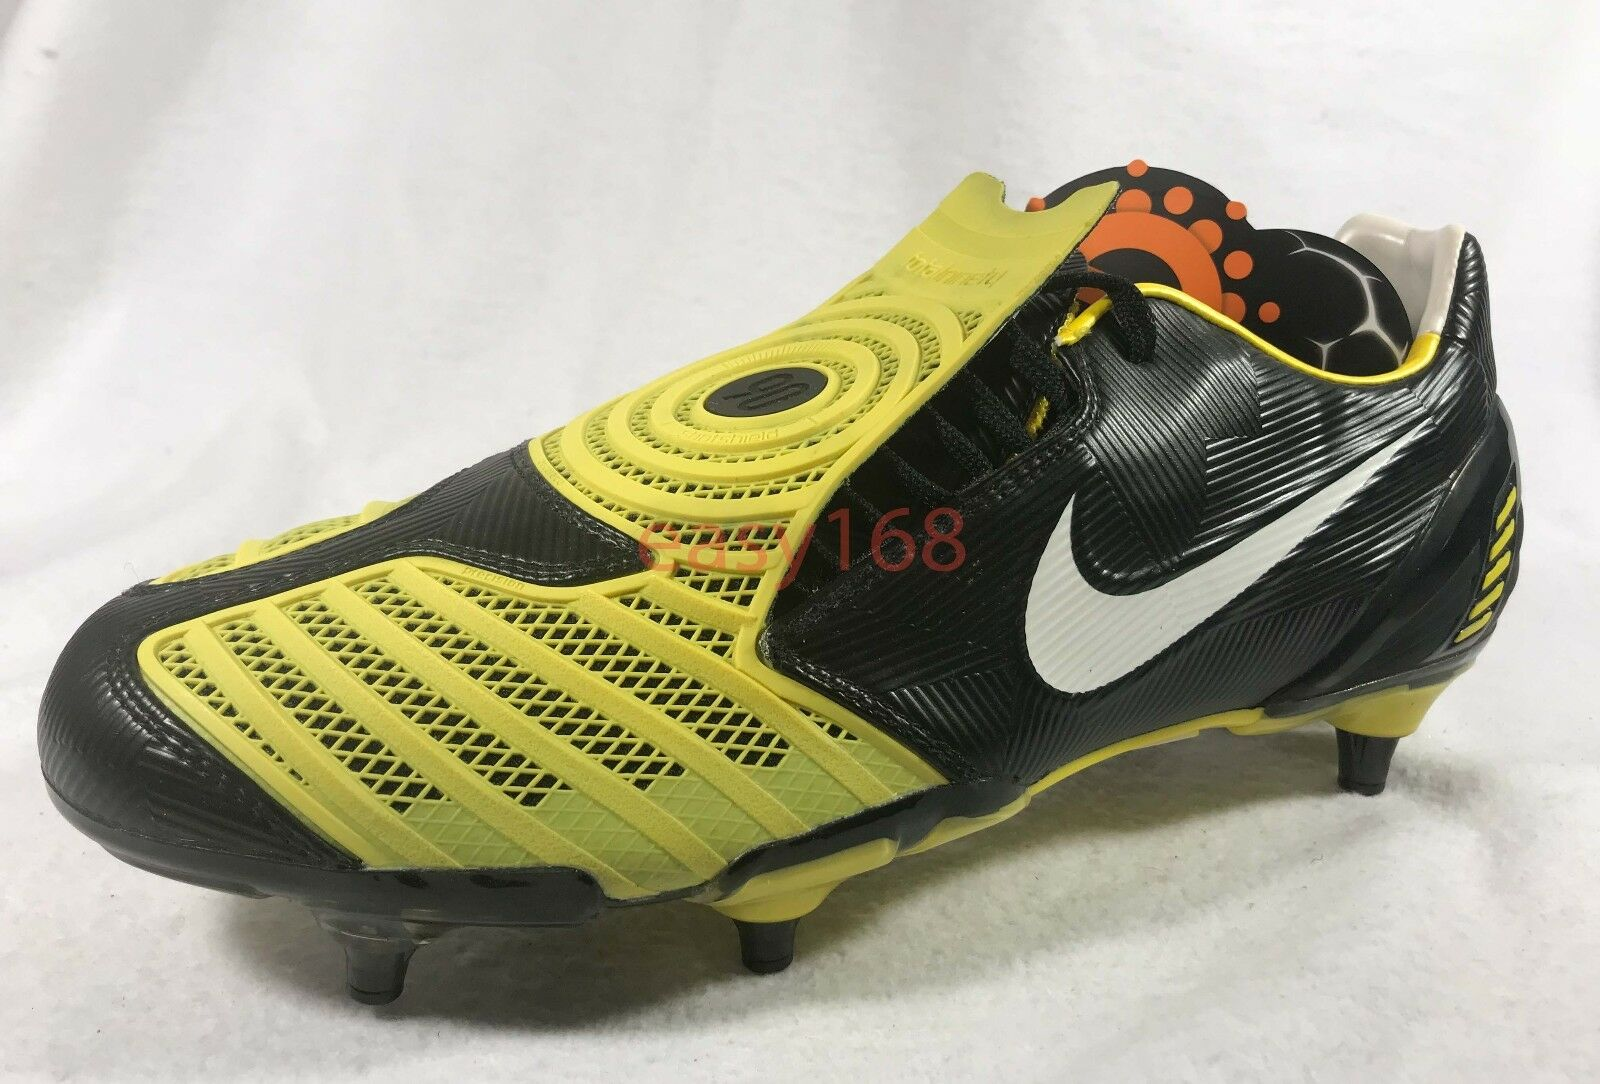 New Nike Total90 Laser II SG Sz 12.5 Soccer 47 Cleats 355869 Mens Promo Yellow